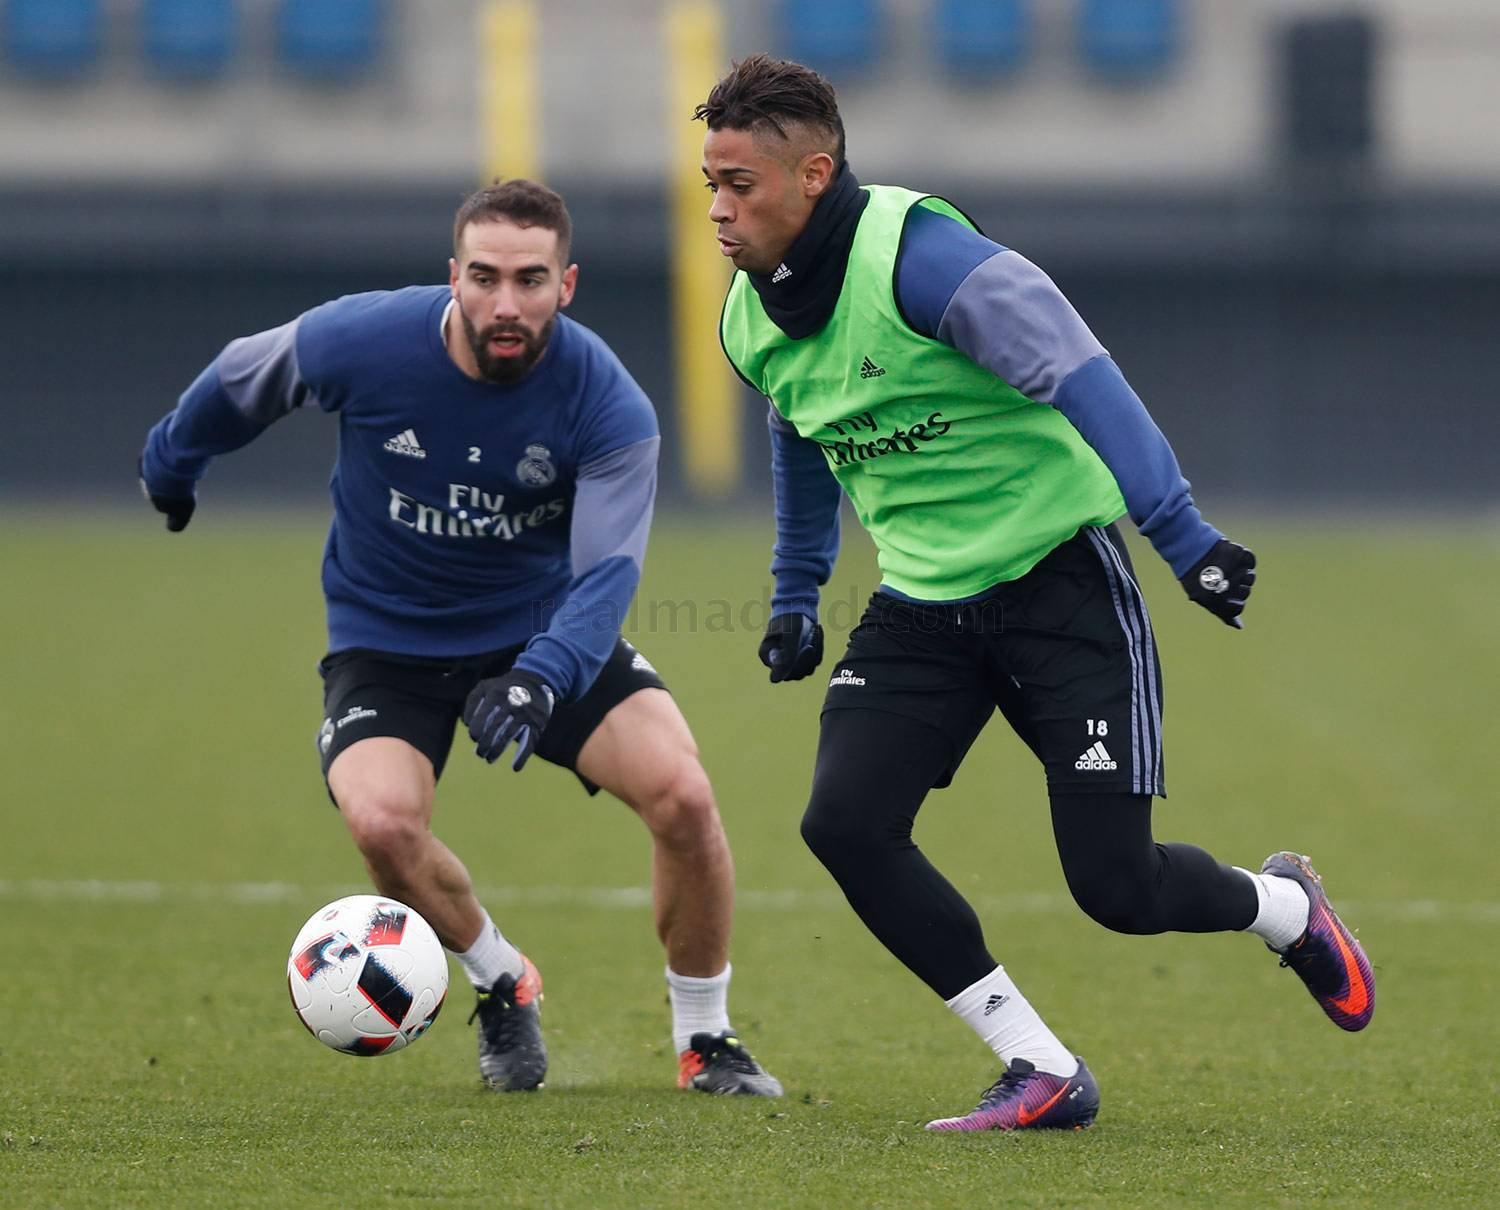 Real Madrid - Entrenamiento del Real Madrid - 02-01-2017